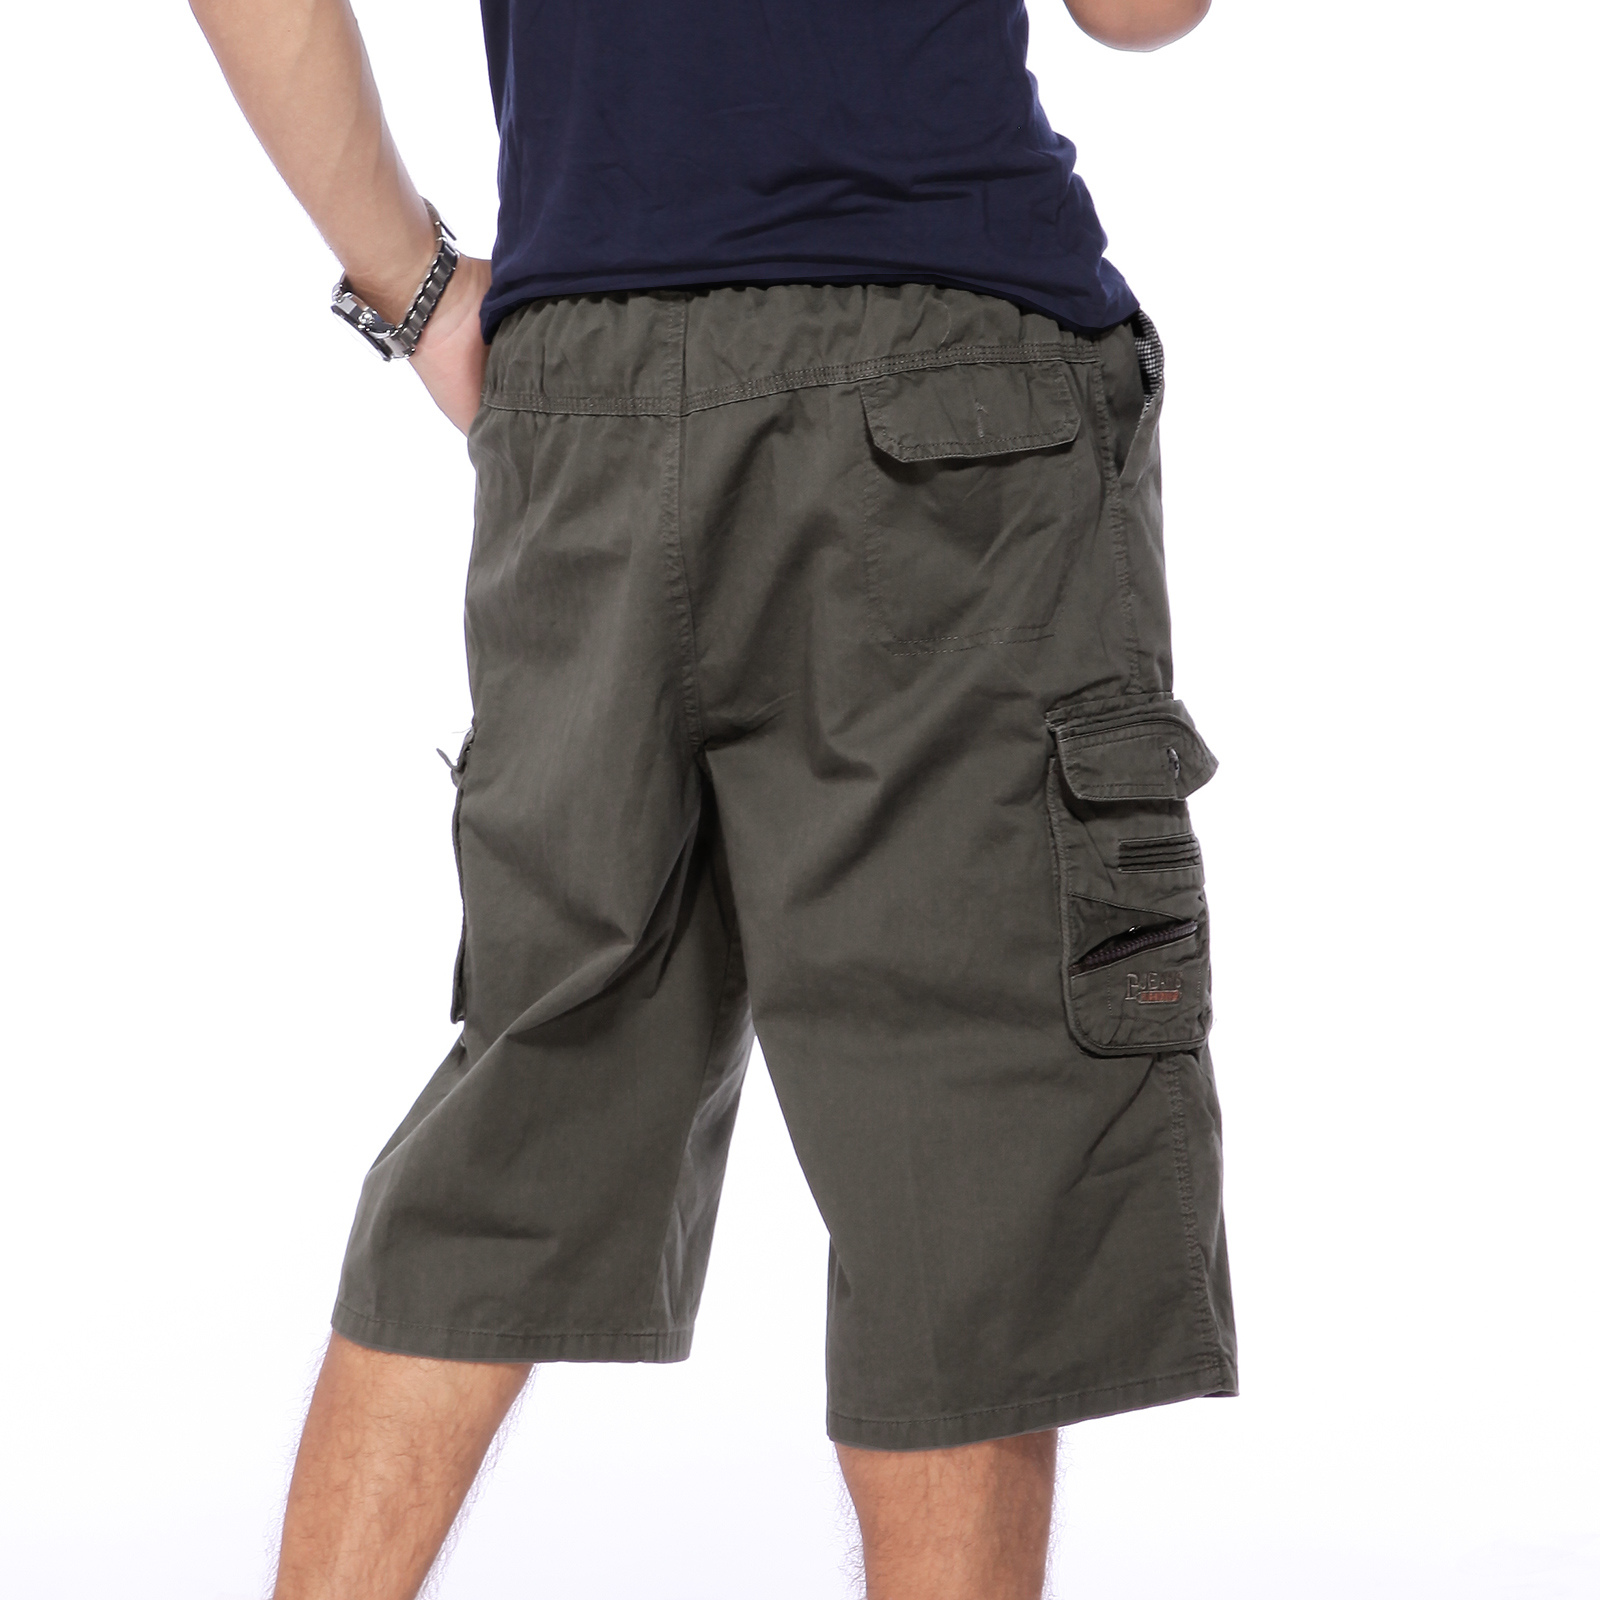 herren jungen casual cargo hosen shorts gummizug kurze bermuda 3 farben geschenk ebay. Black Bedroom Furniture Sets. Home Design Ideas